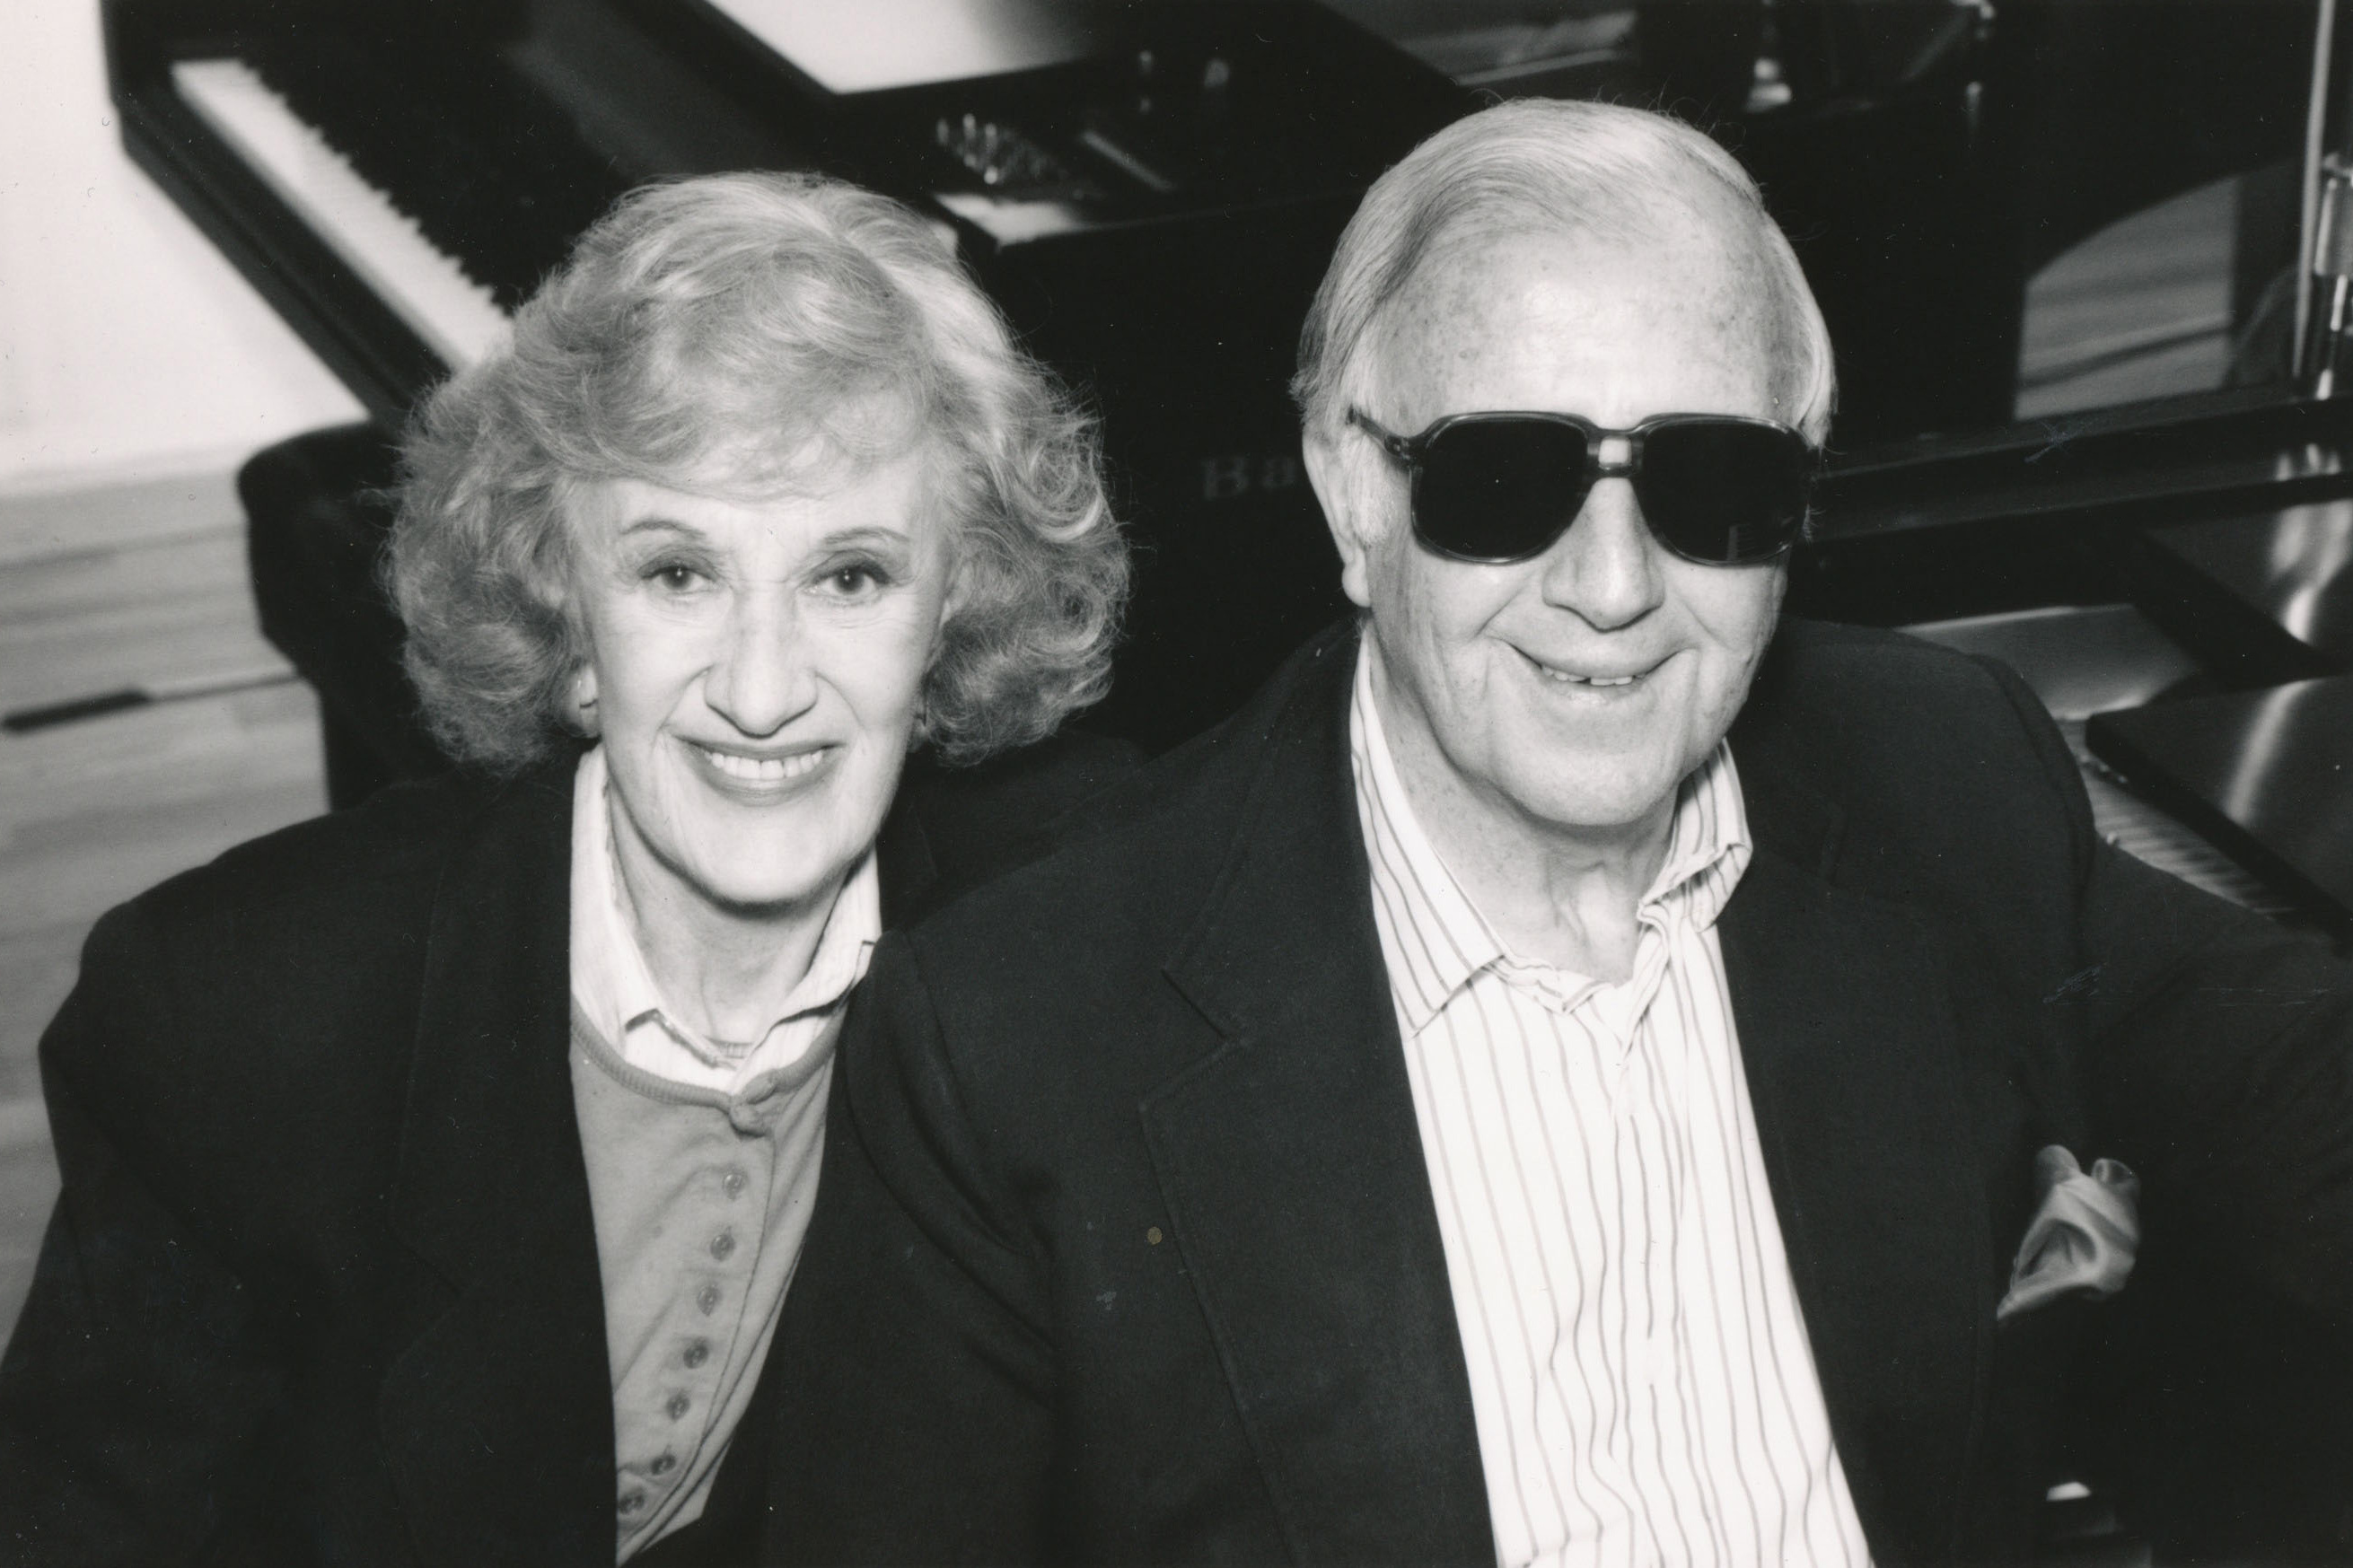 McPartland and her peer George Shearing both came to the U.S. from England to pursue jazz piano.